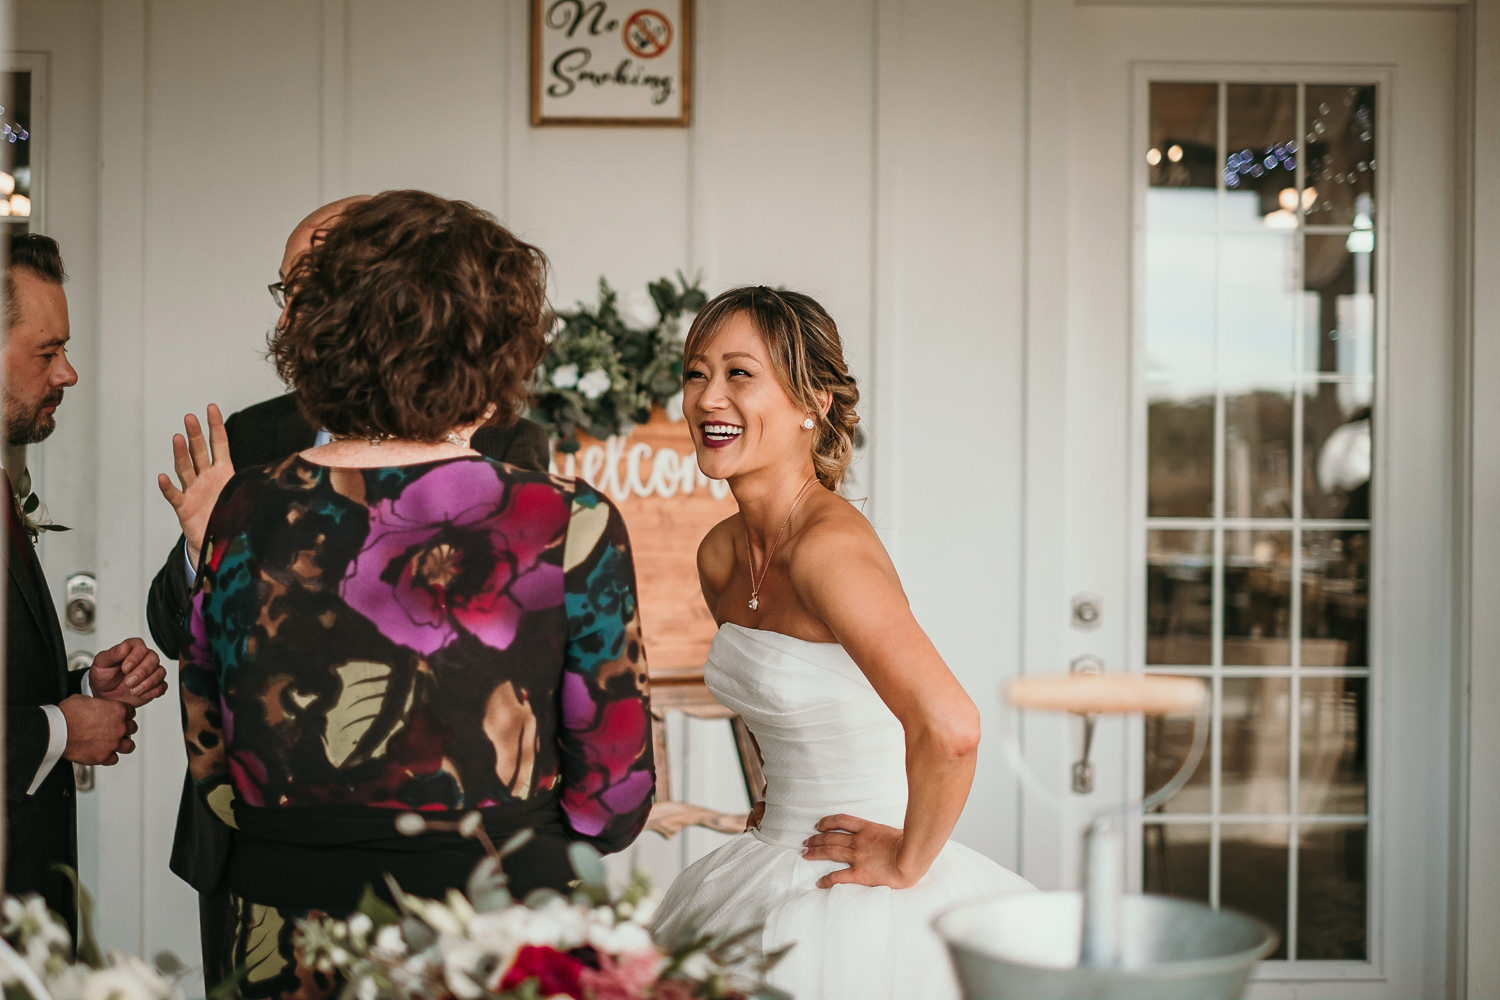 bride smiling with wedding guest